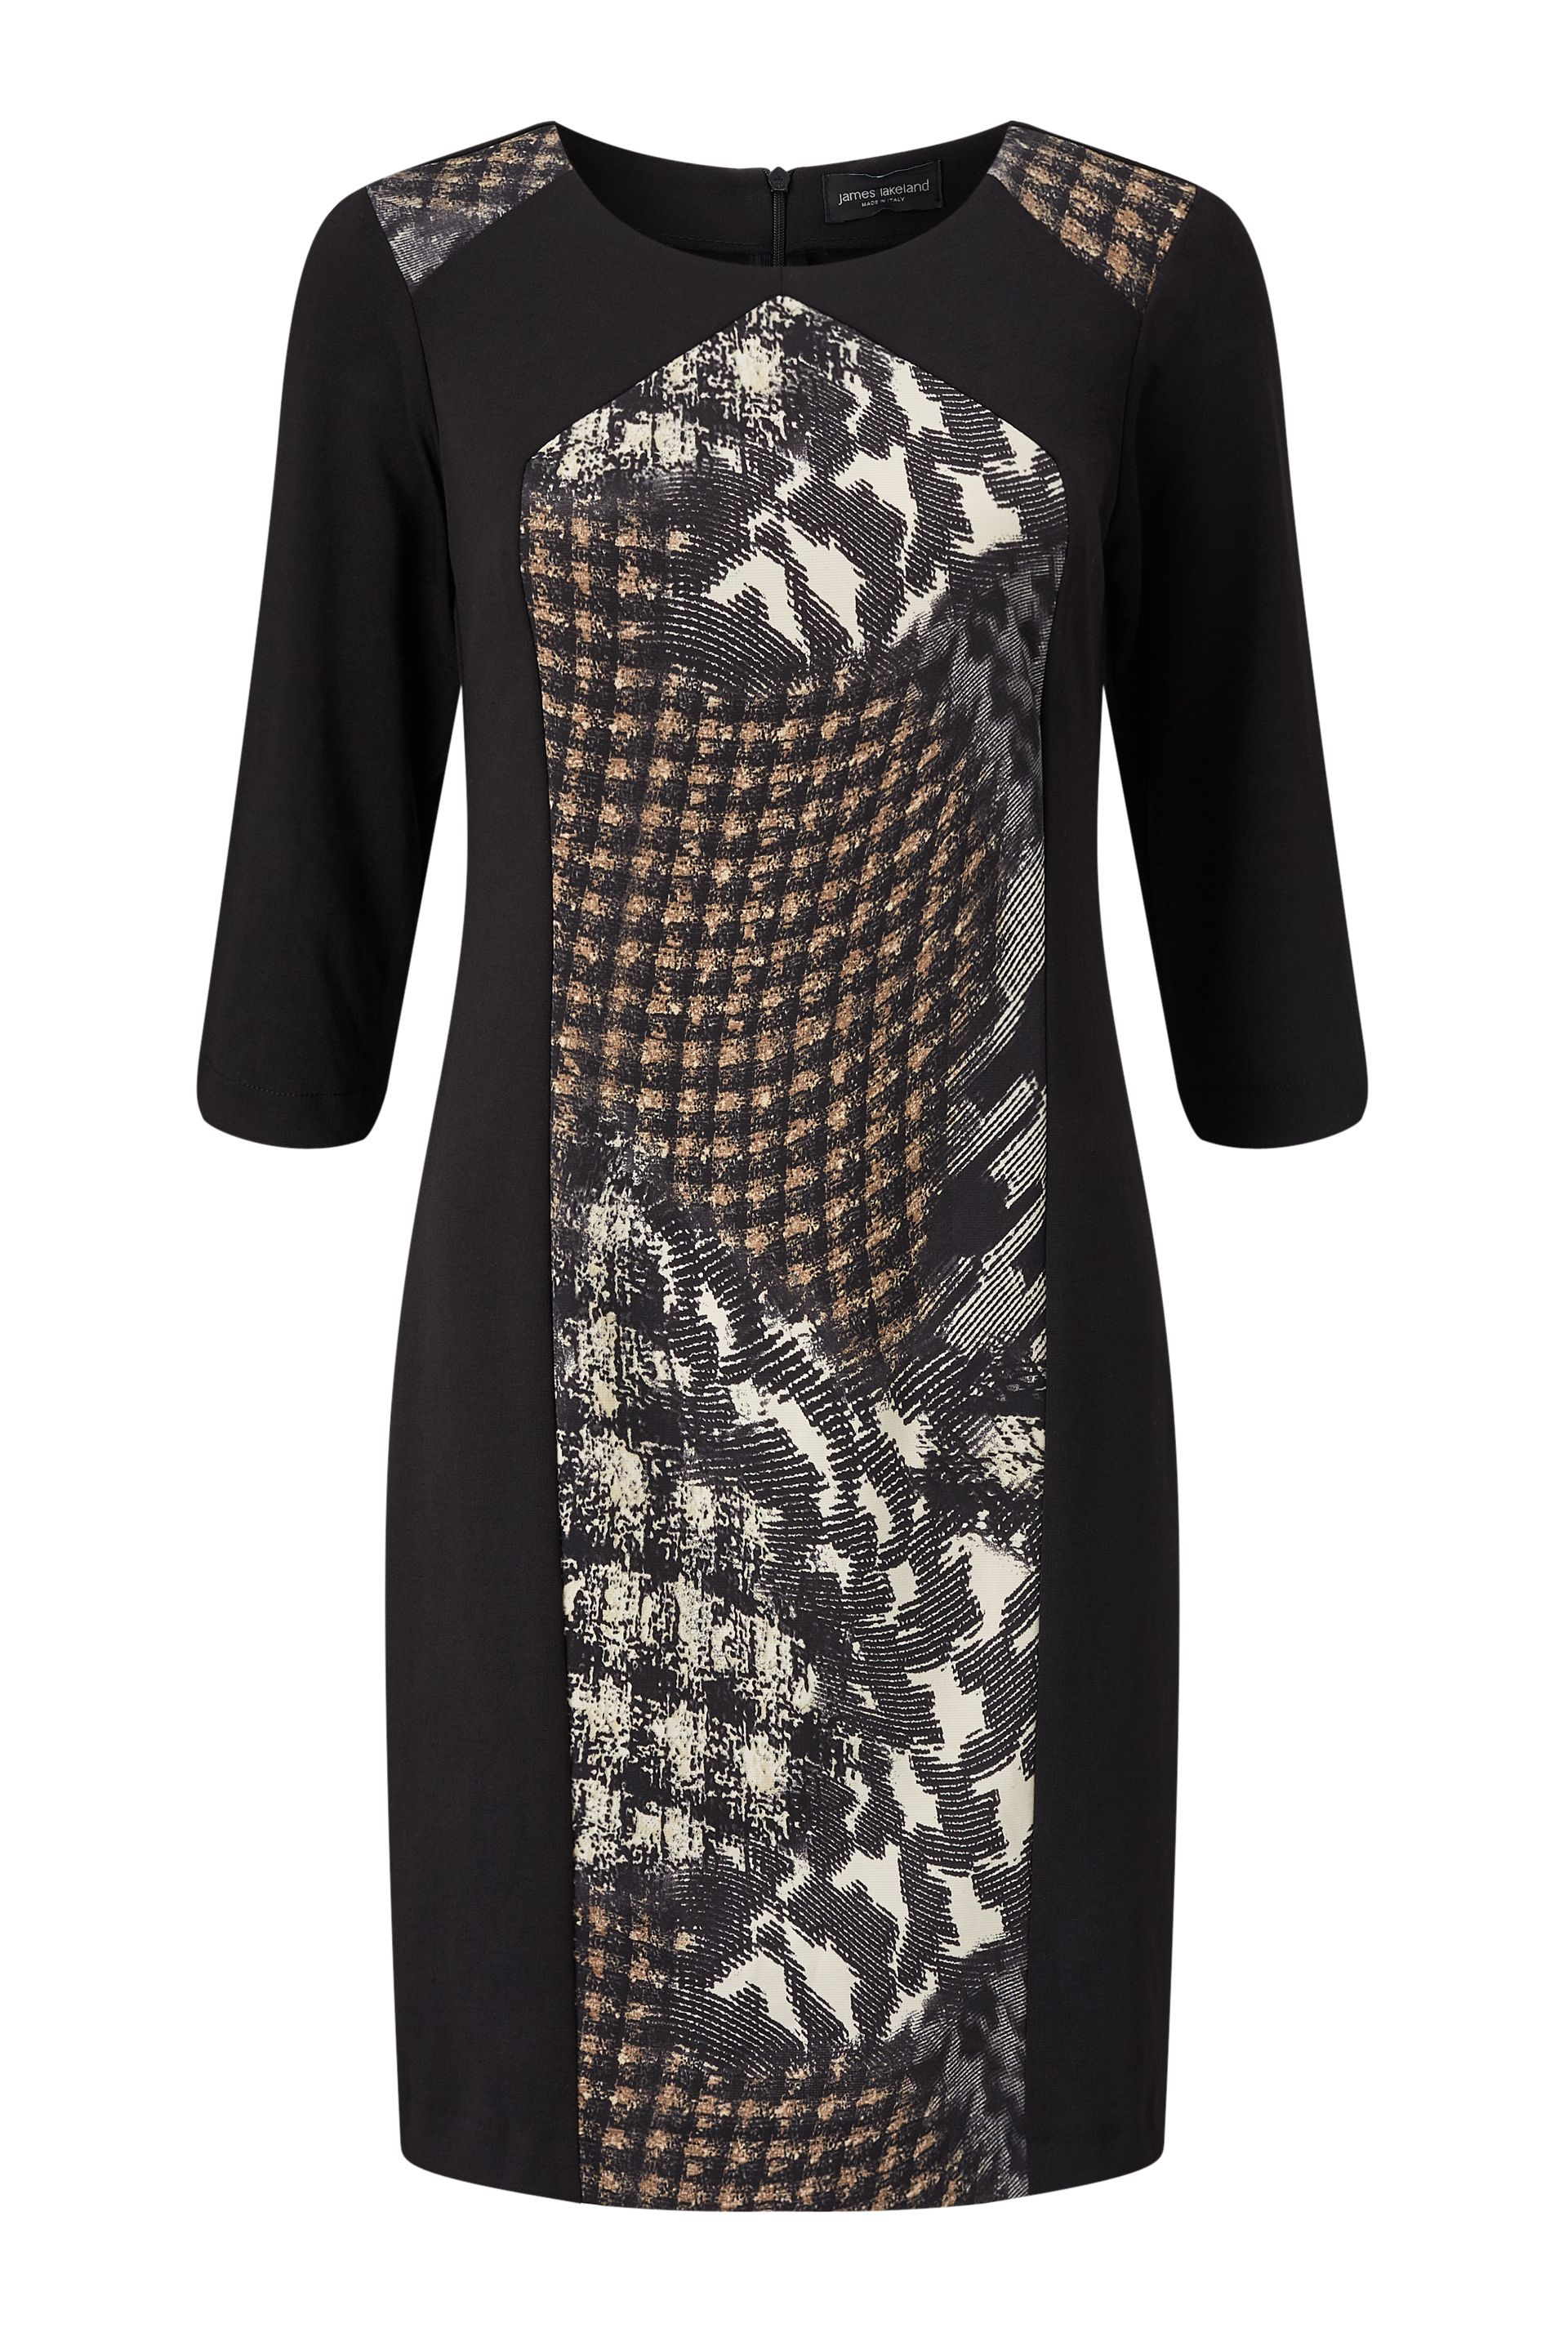 James Lakeland Central Print Dress, Black